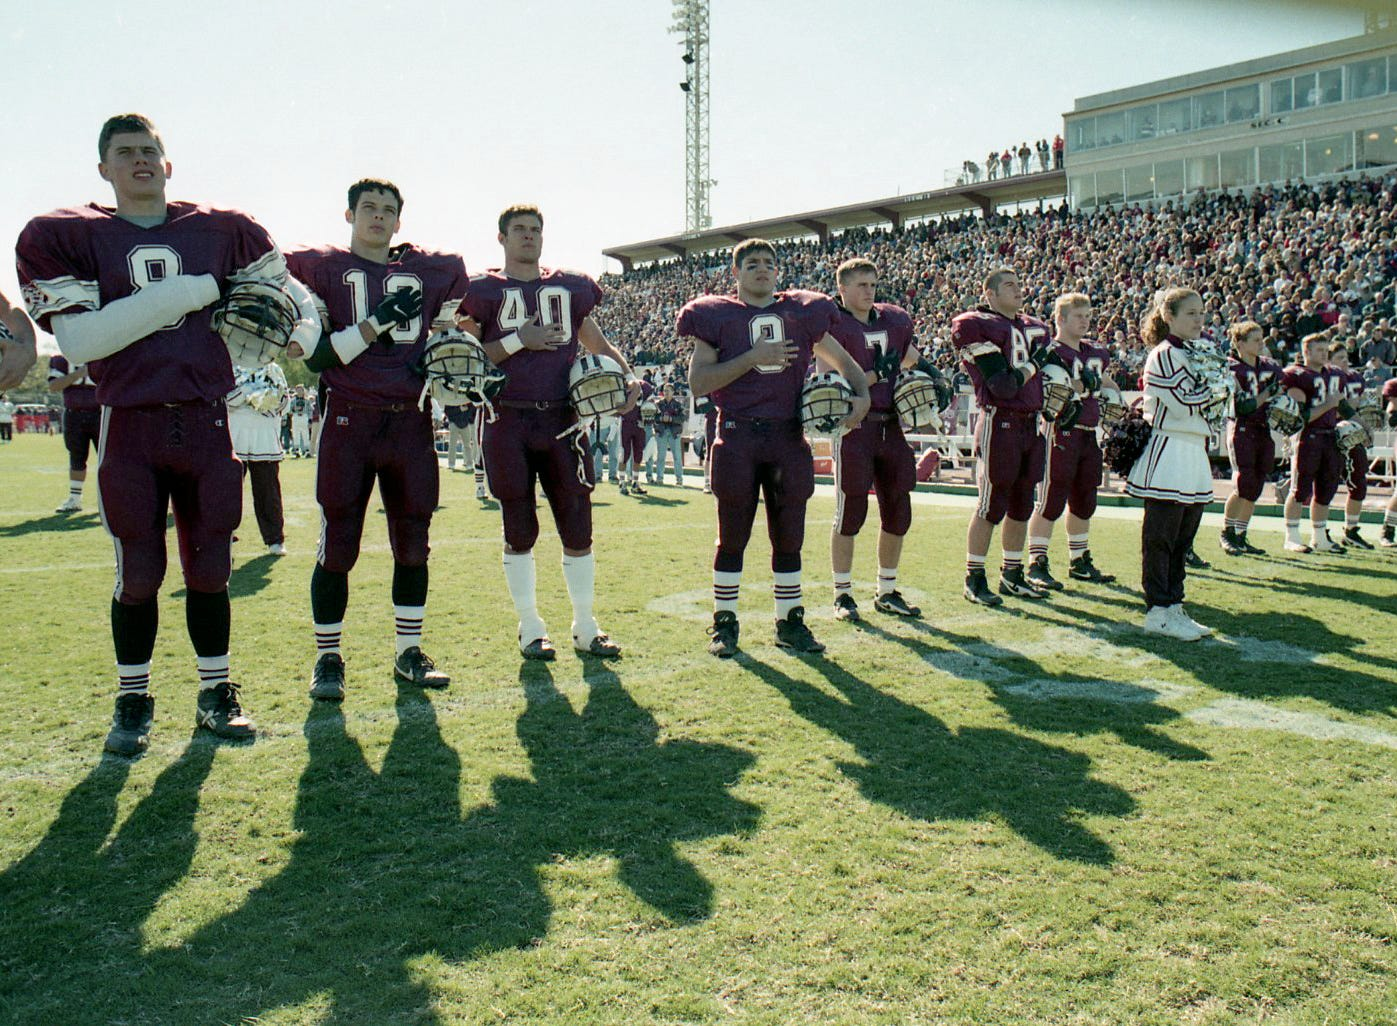 Calallen players line up before the start of the state semifinal game against La Marque on Dec. 13, 1997 at Buc Stadium.